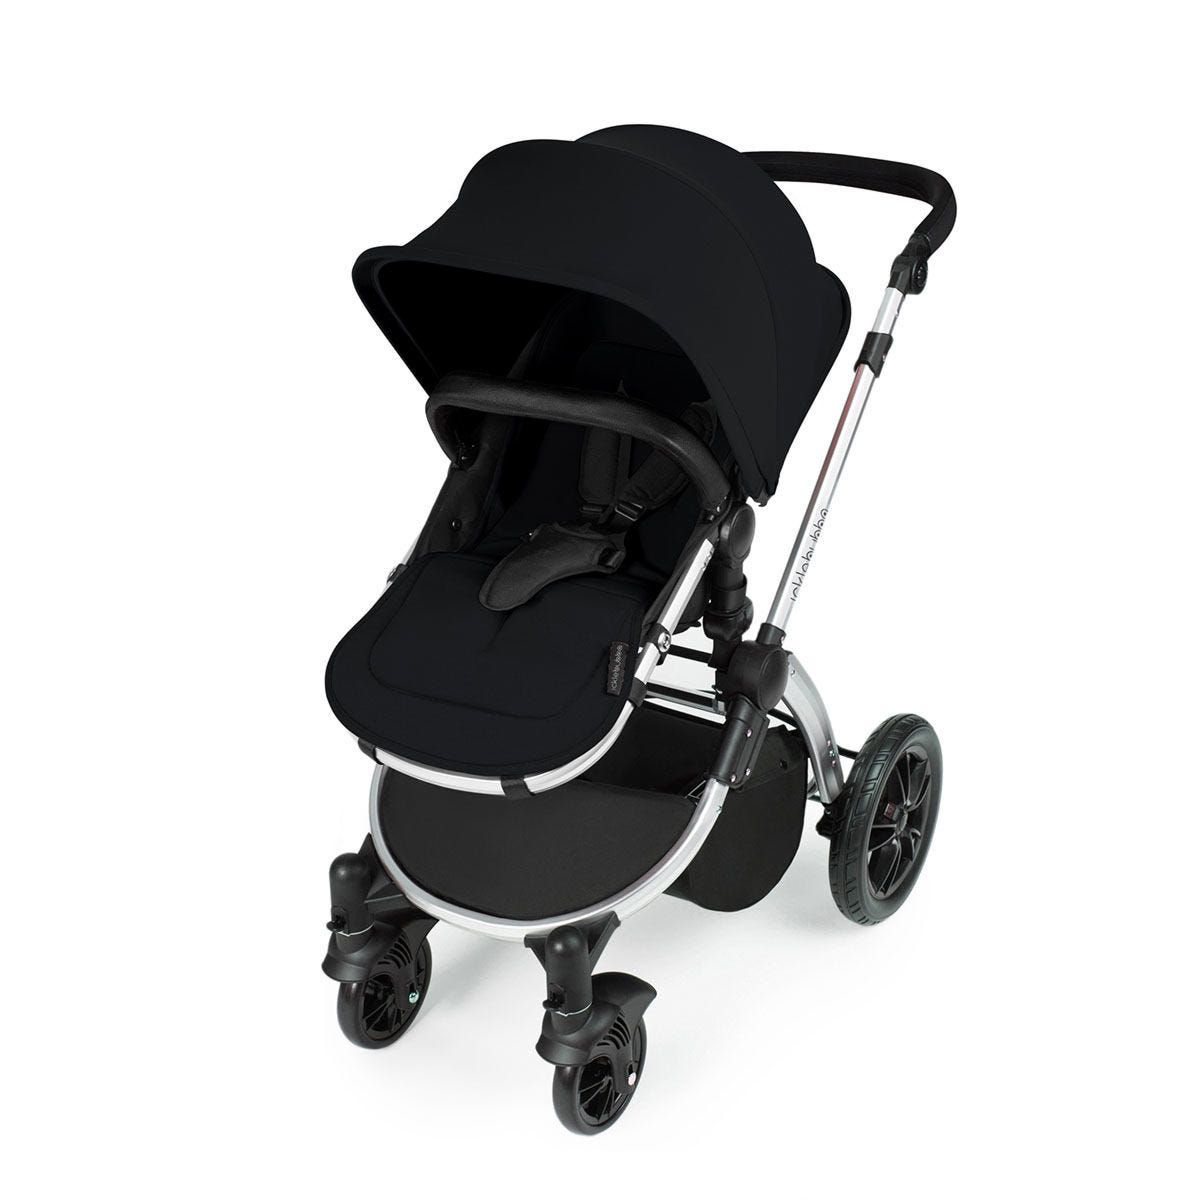 Ickle Bubba Stomp V3 All in One Travel System with Isofix Base - Black on Silver with Black Handles